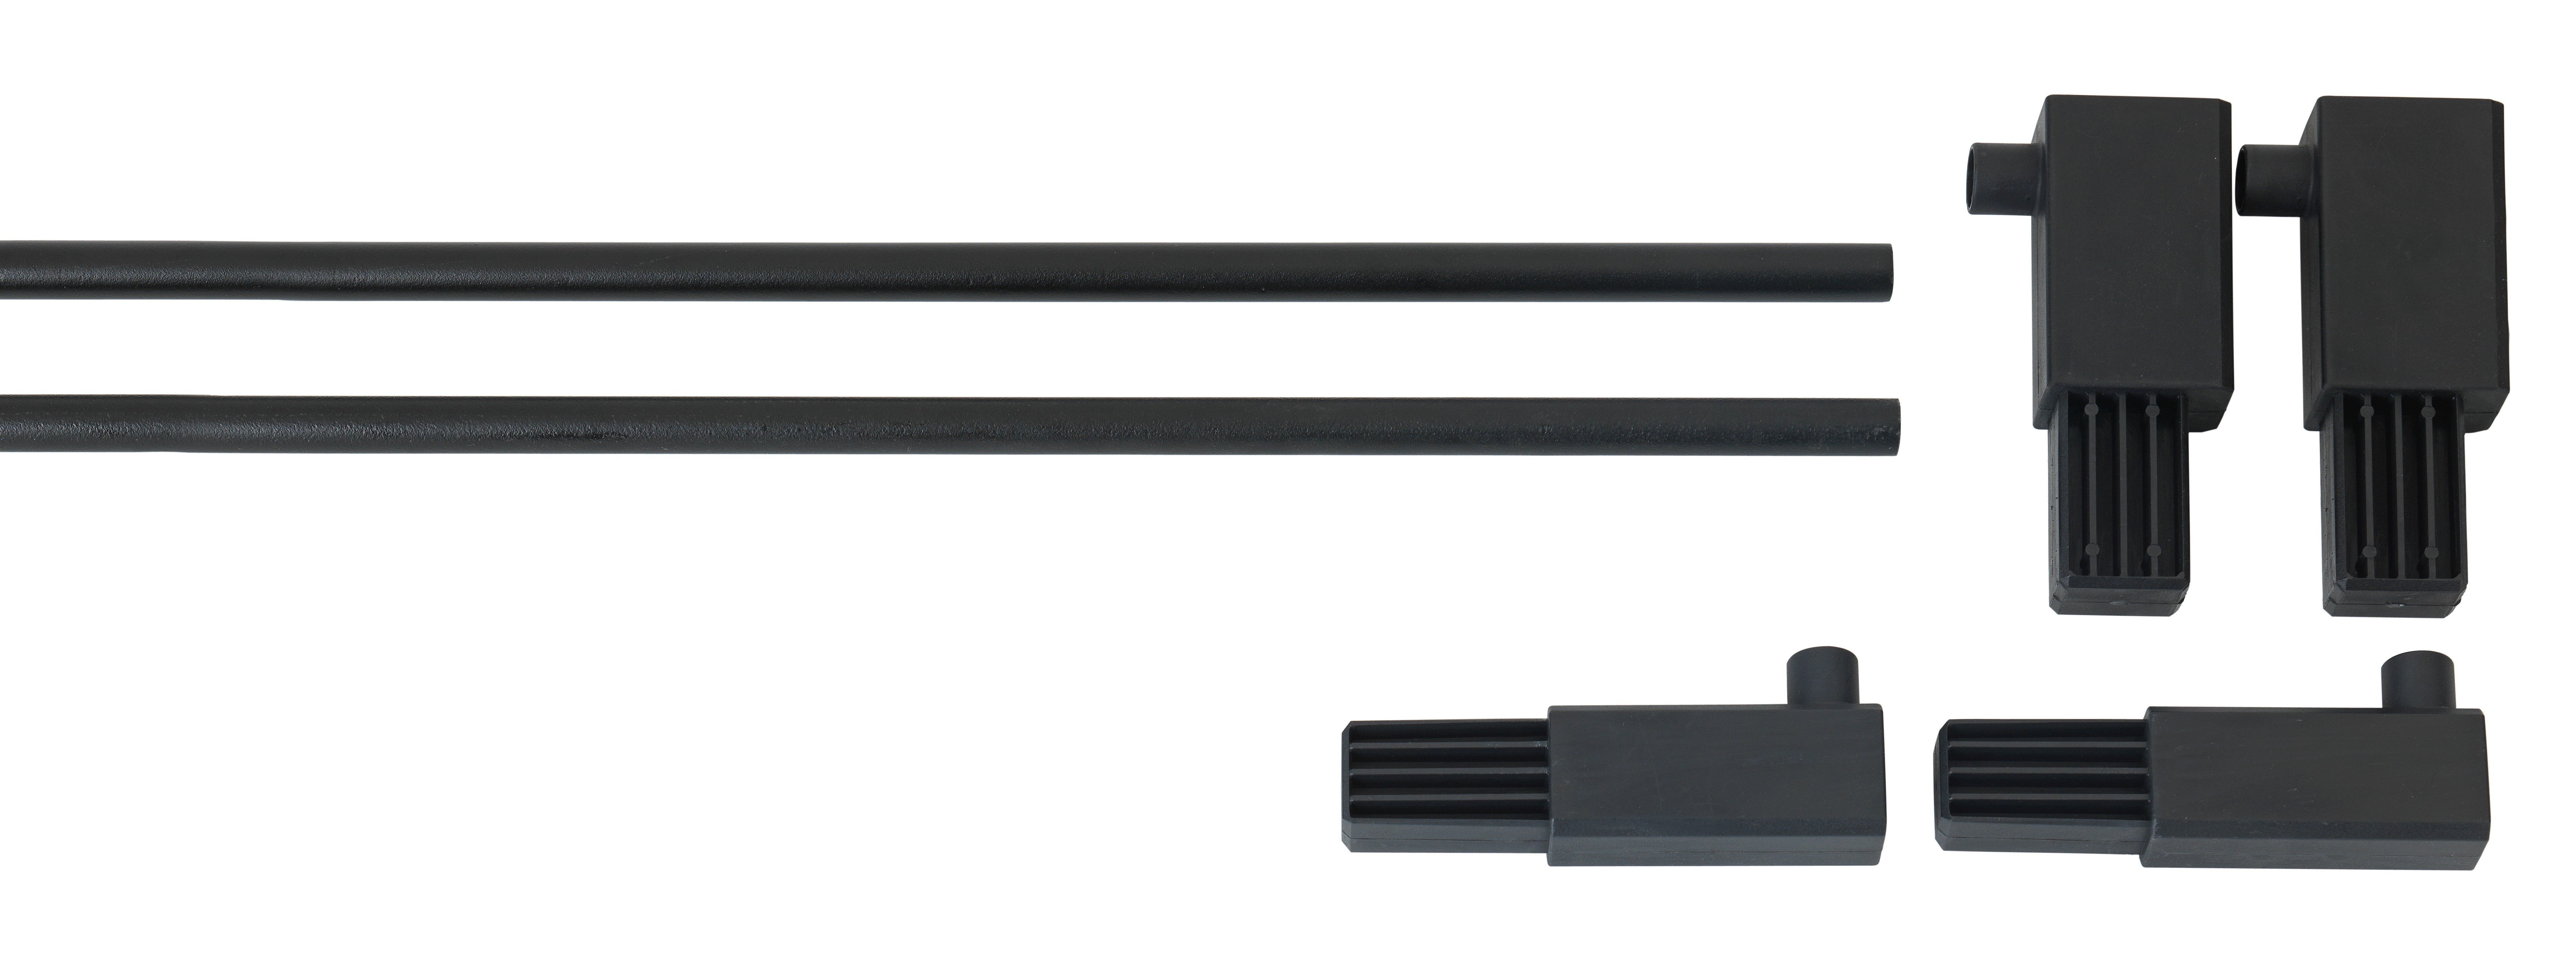 Extra Tall Pressure Pet Gate Extension - Black